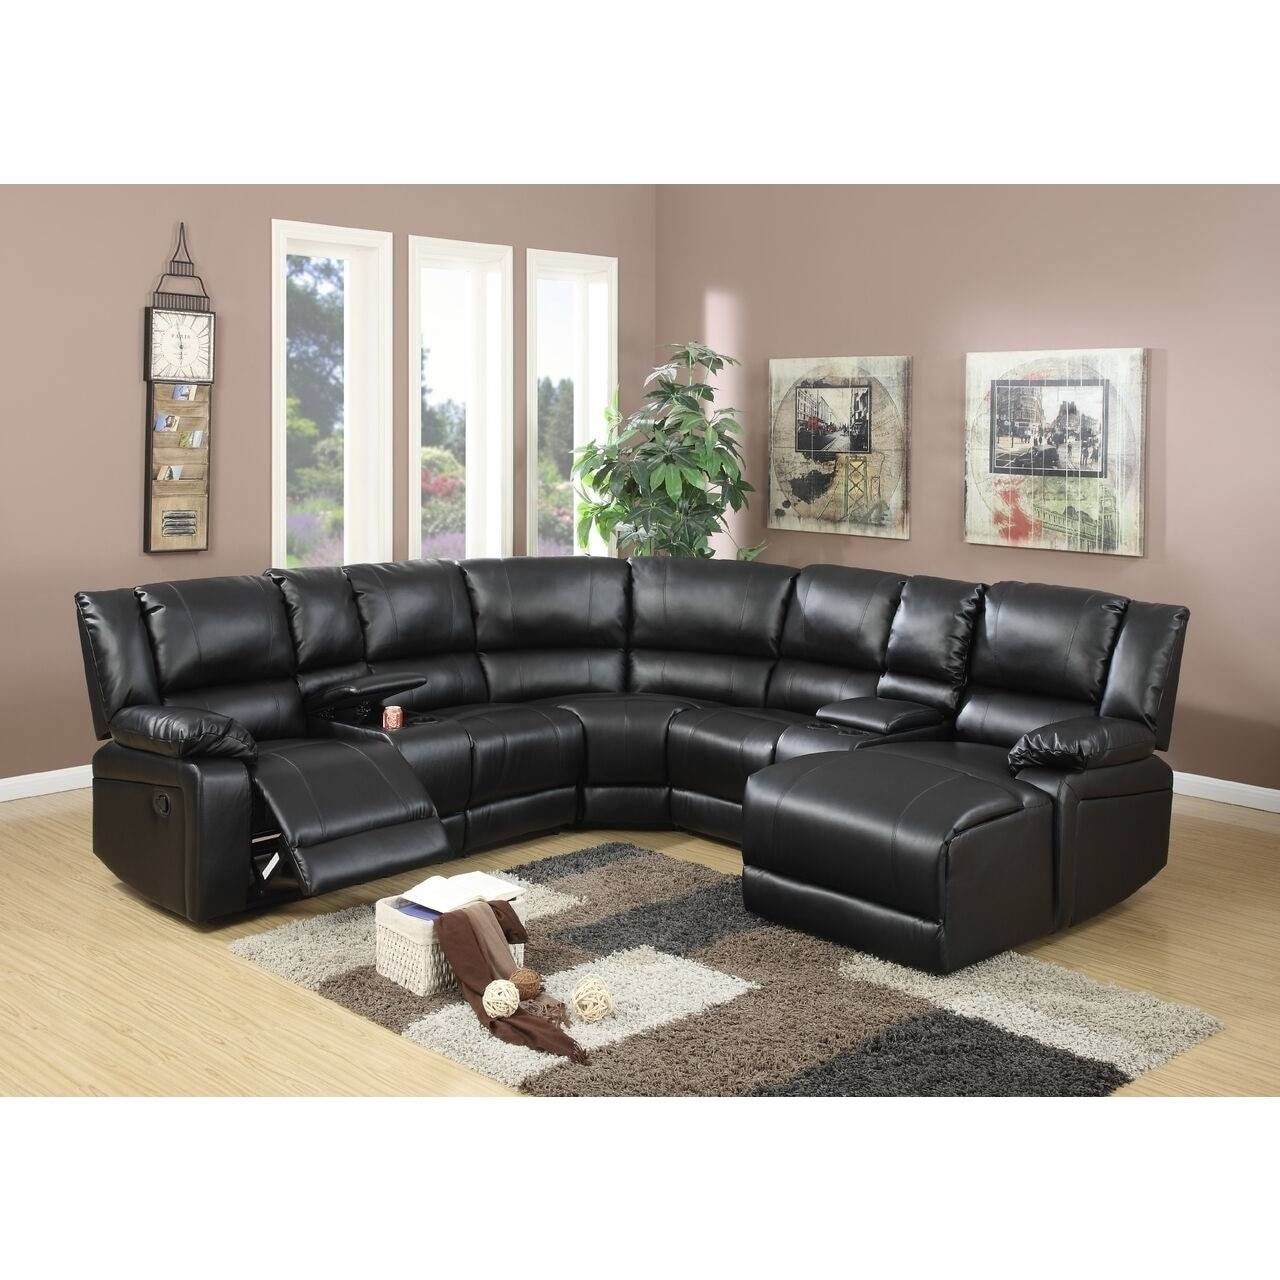 Leather Motion Sectional Sofas | Sofa Menzilperde inside Leather Motion Sectional Sofa (Image 17 of 25)